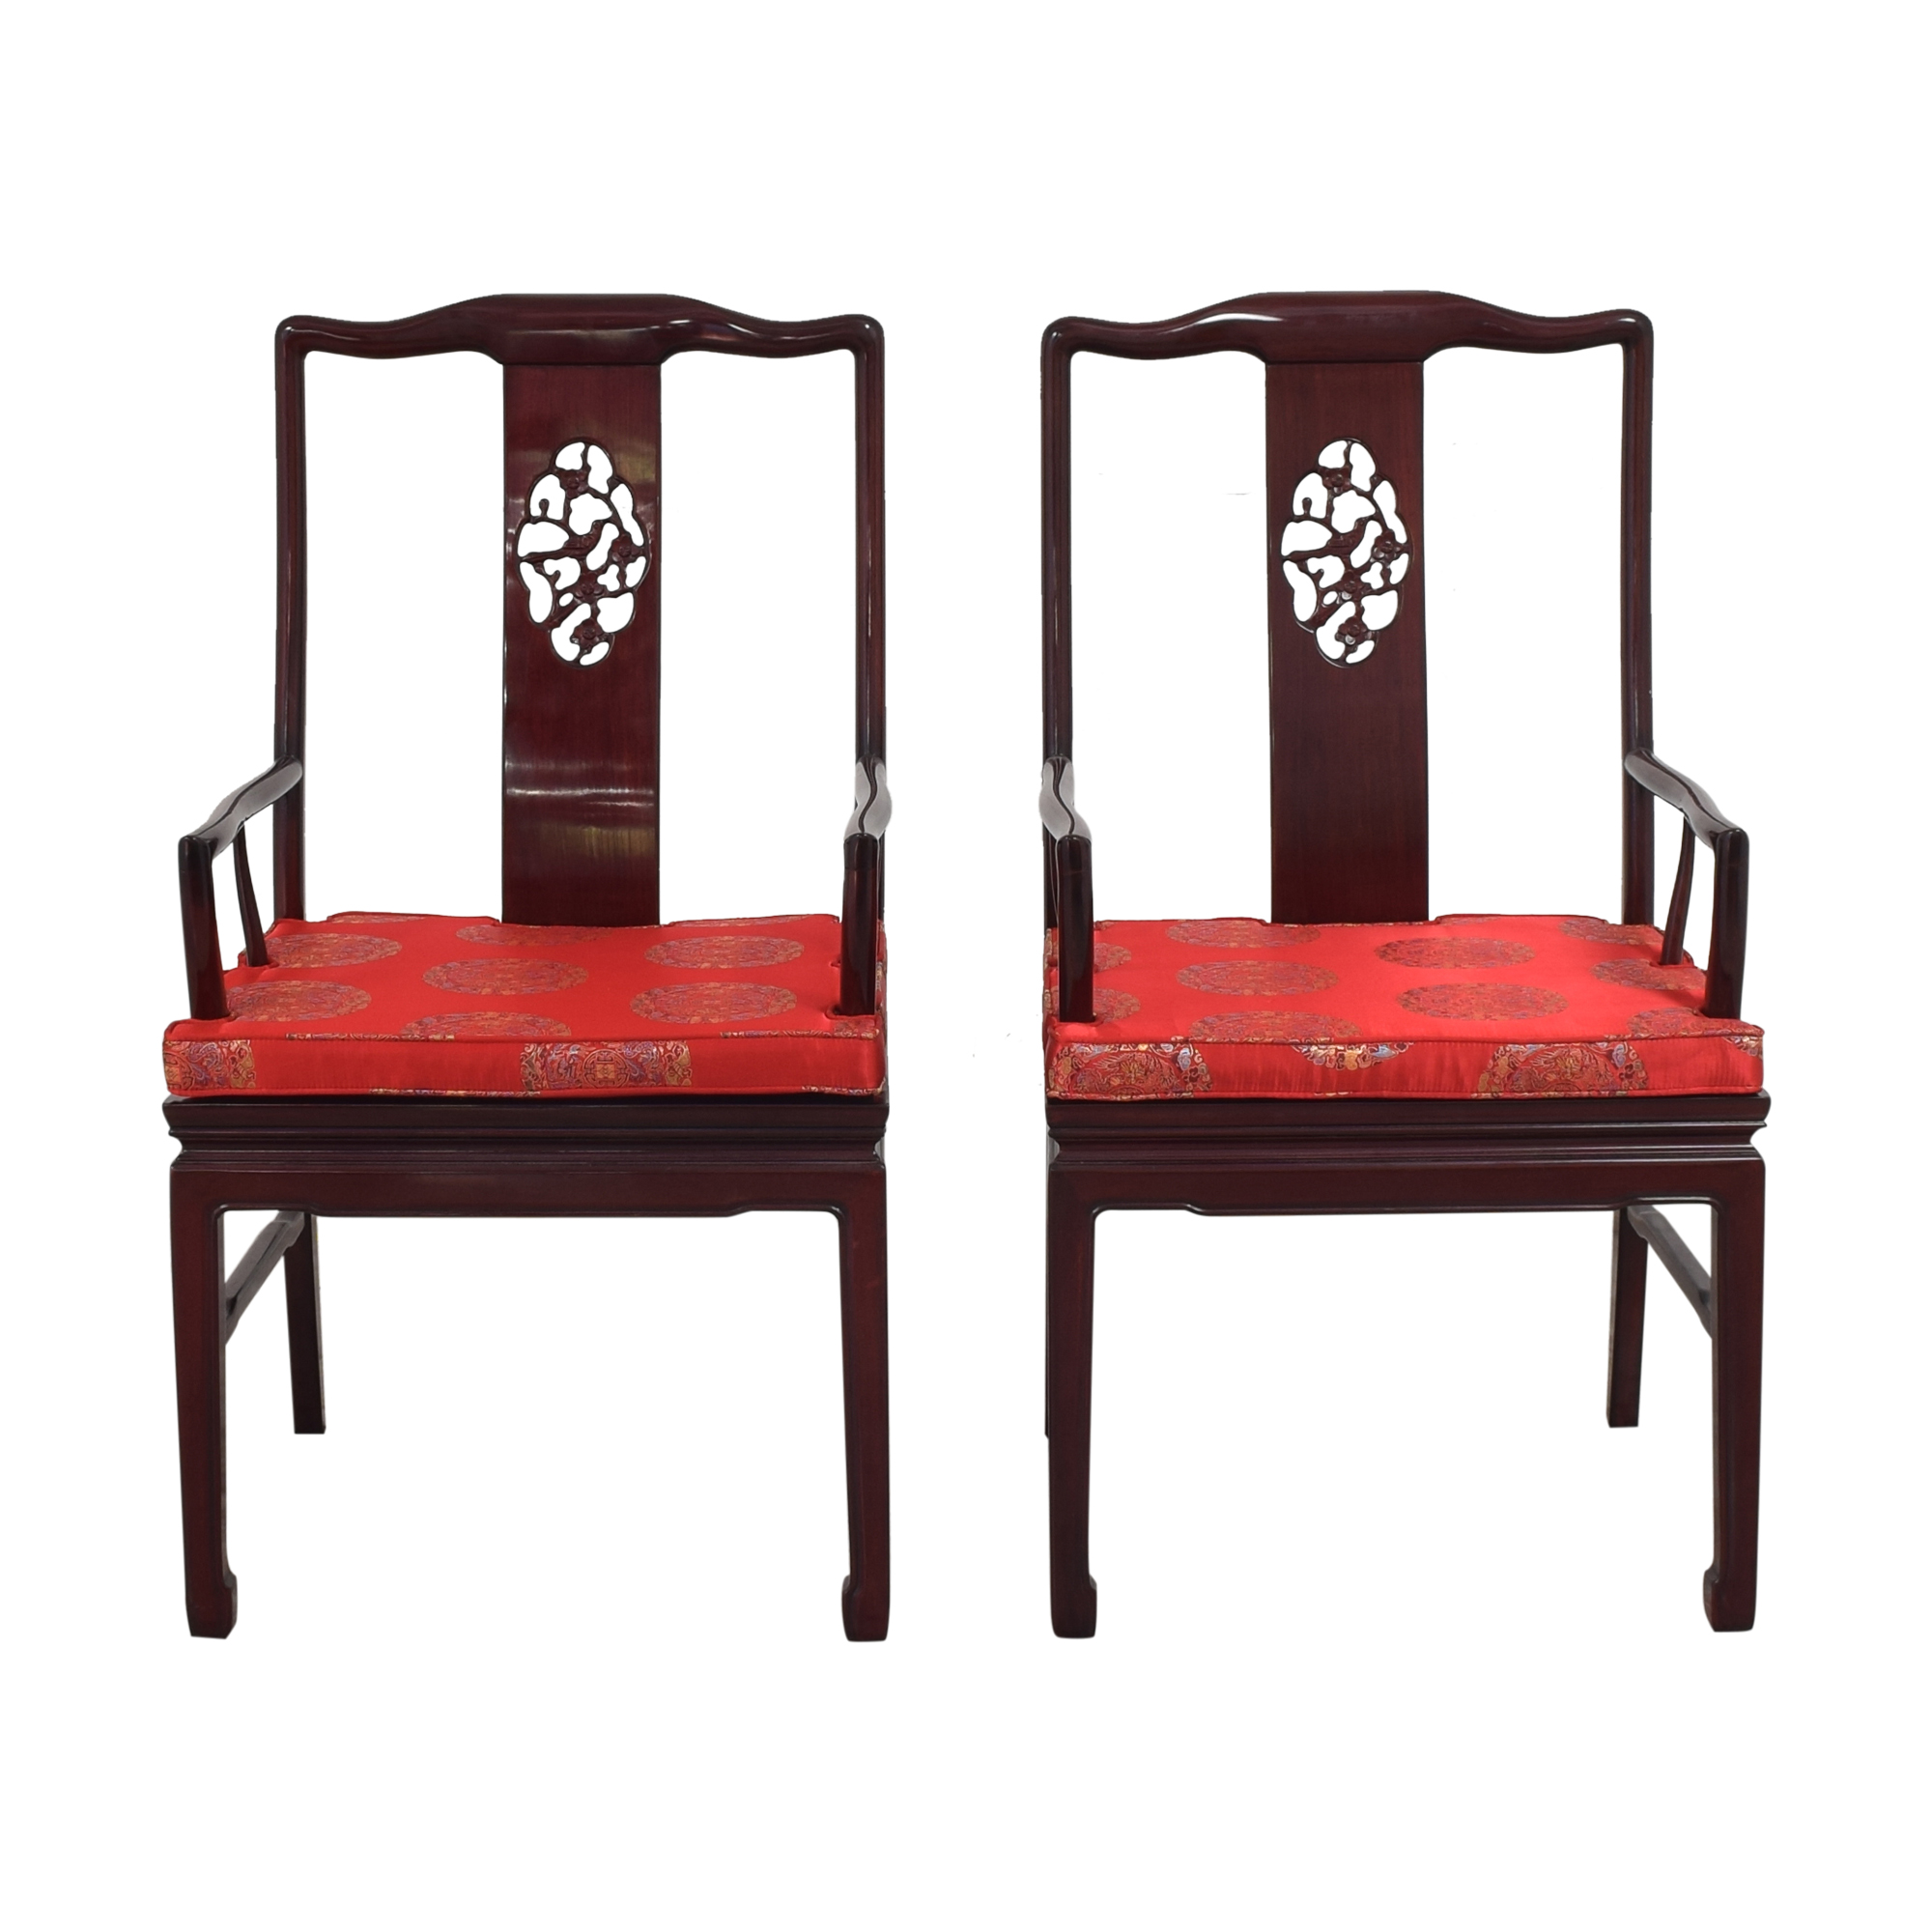 buy Chinoiserie Dining Chairs with Cushions